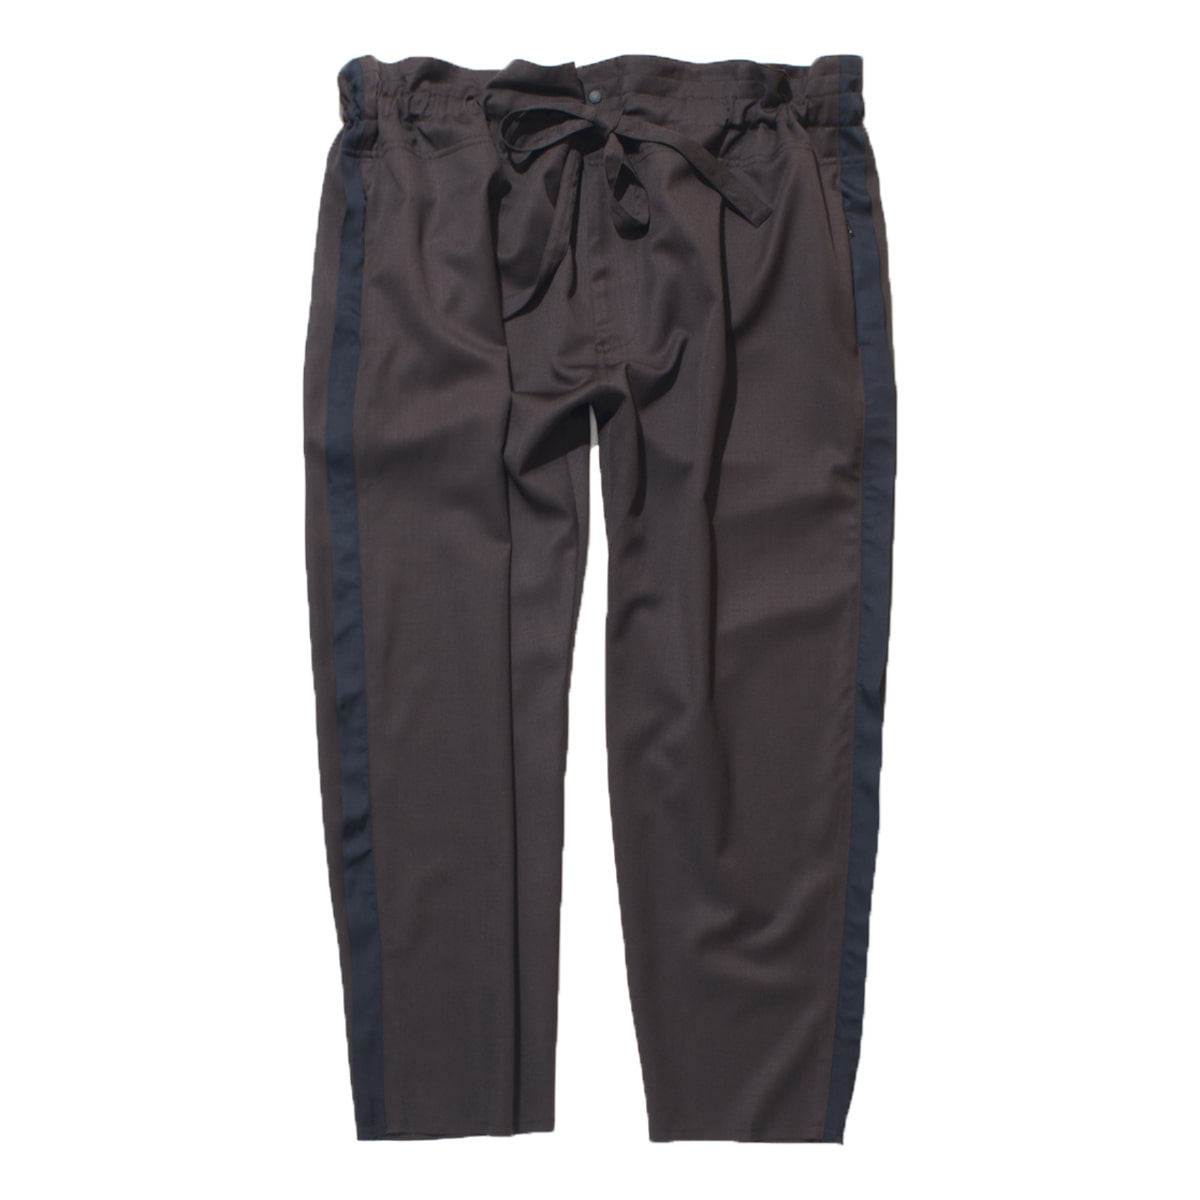 Tapered Wrap Pants (Brown)